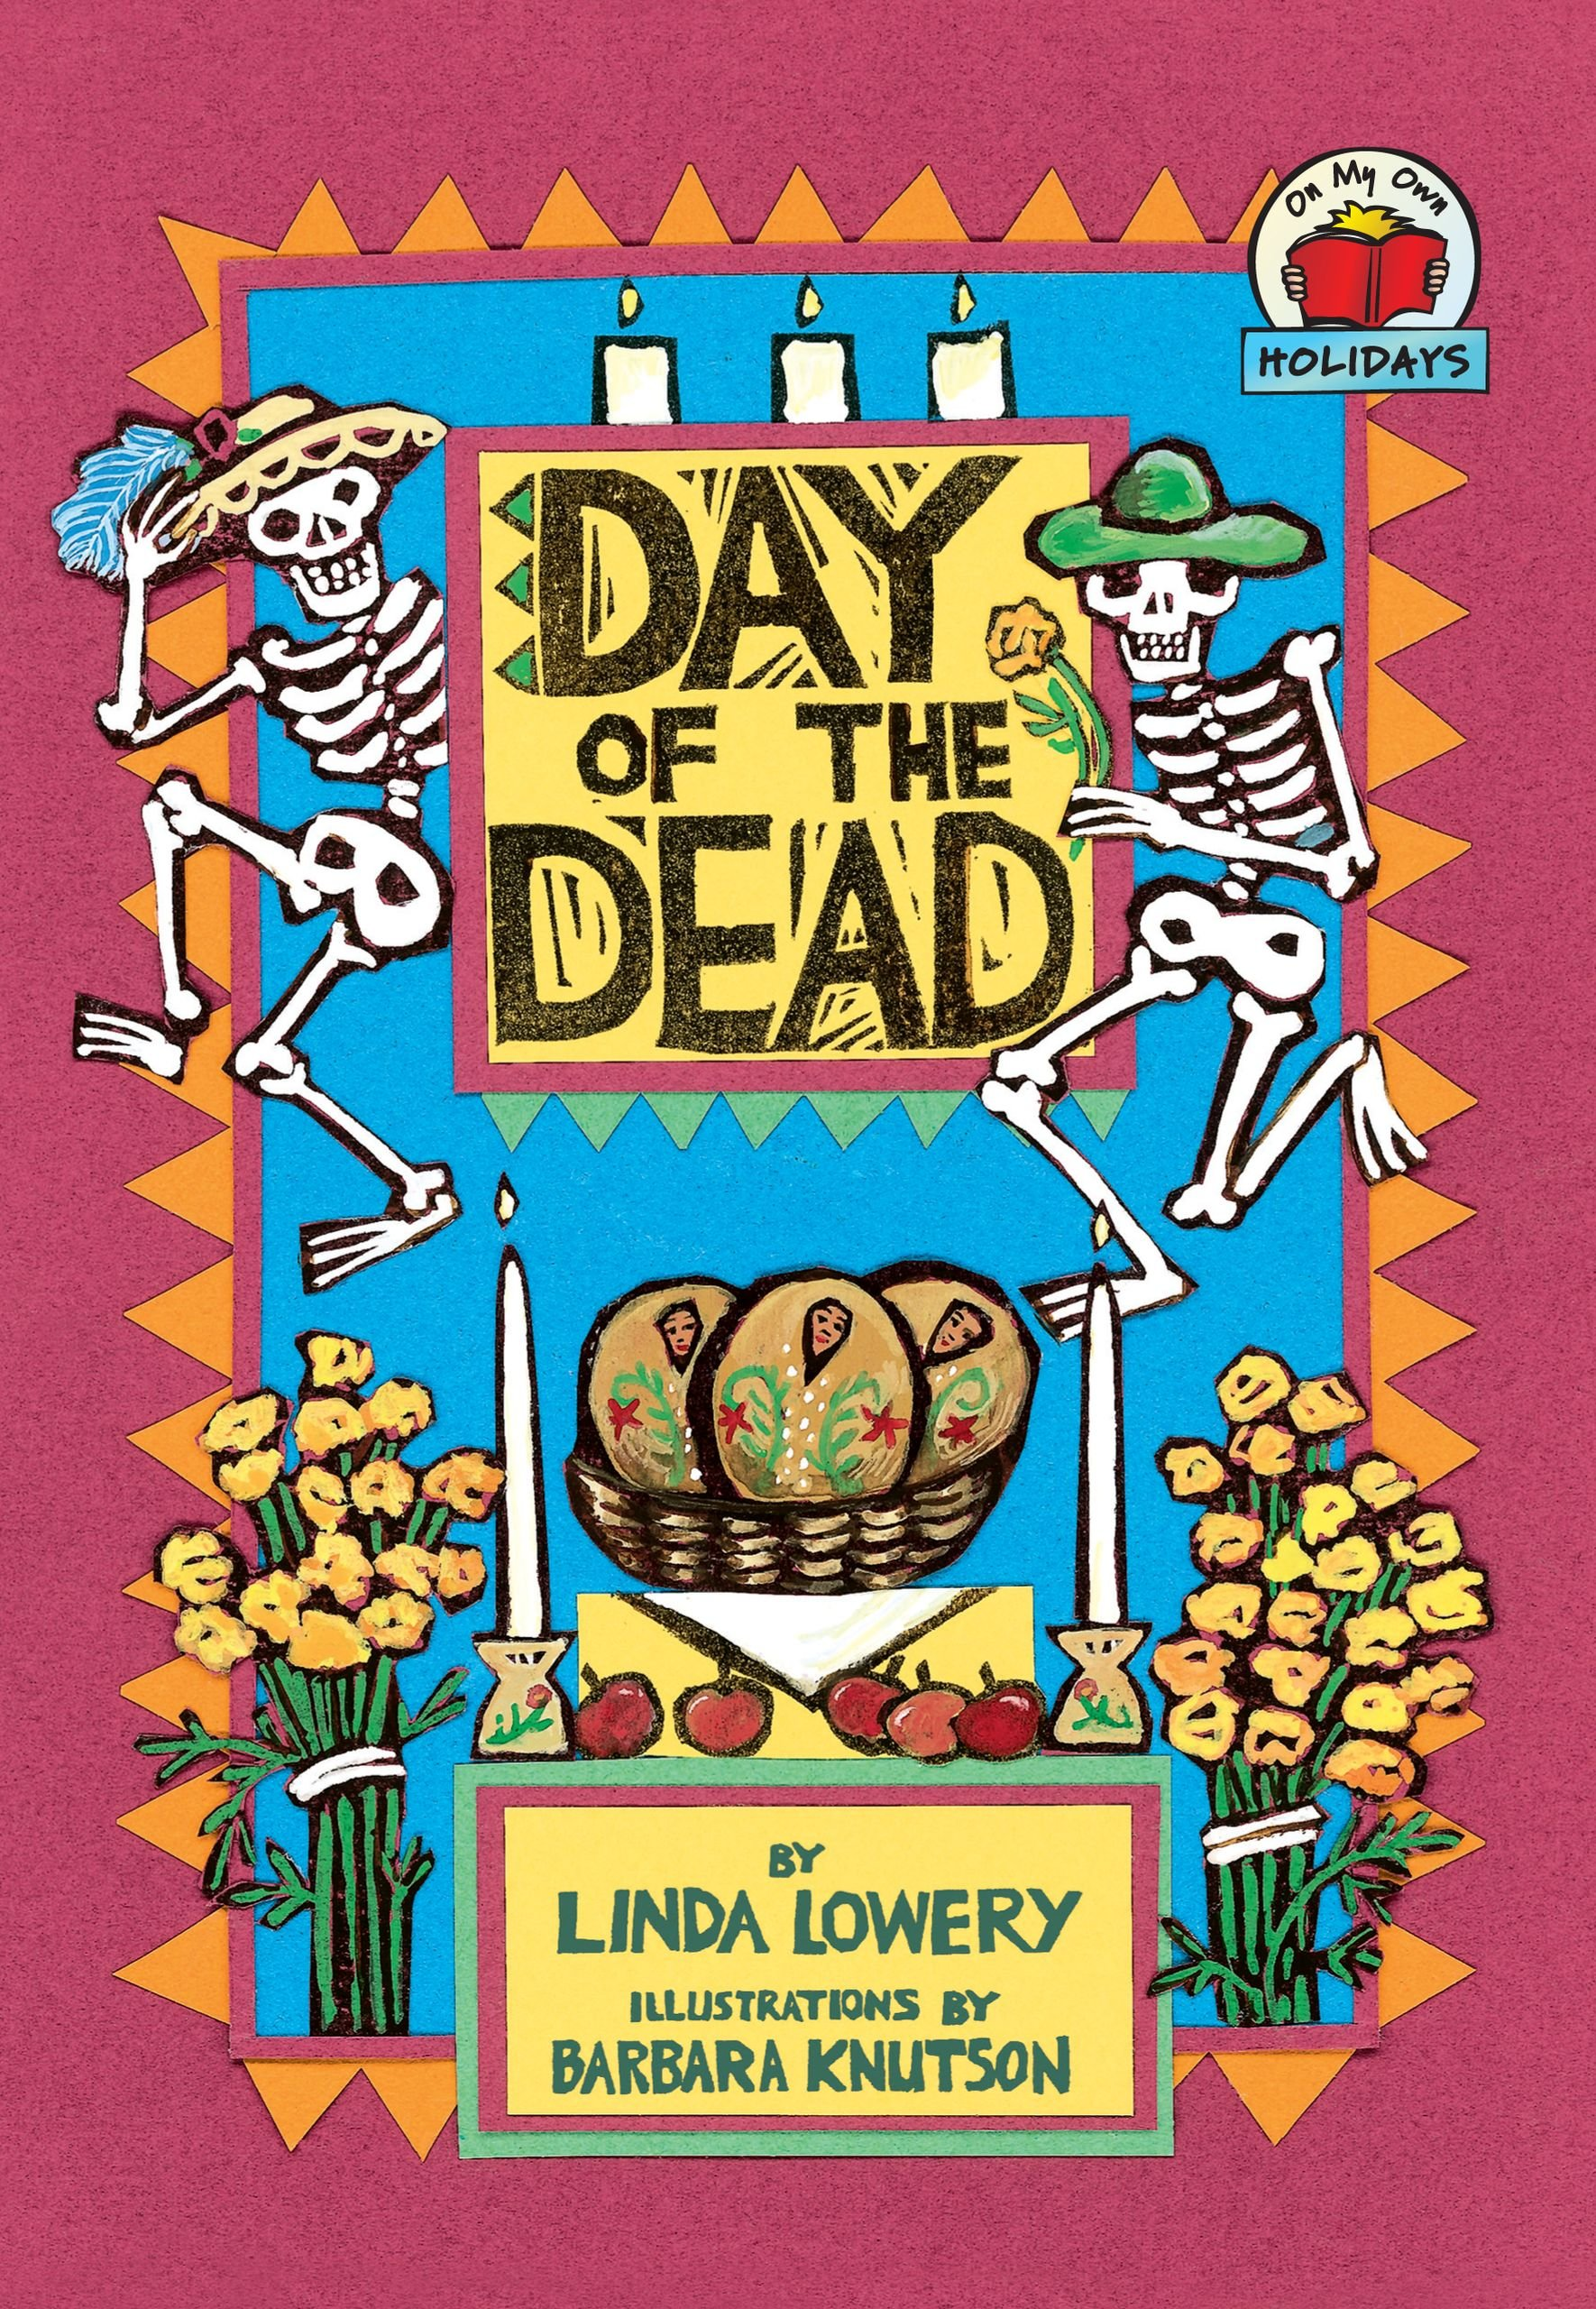 Day of the Dead (On My Own Holidays)